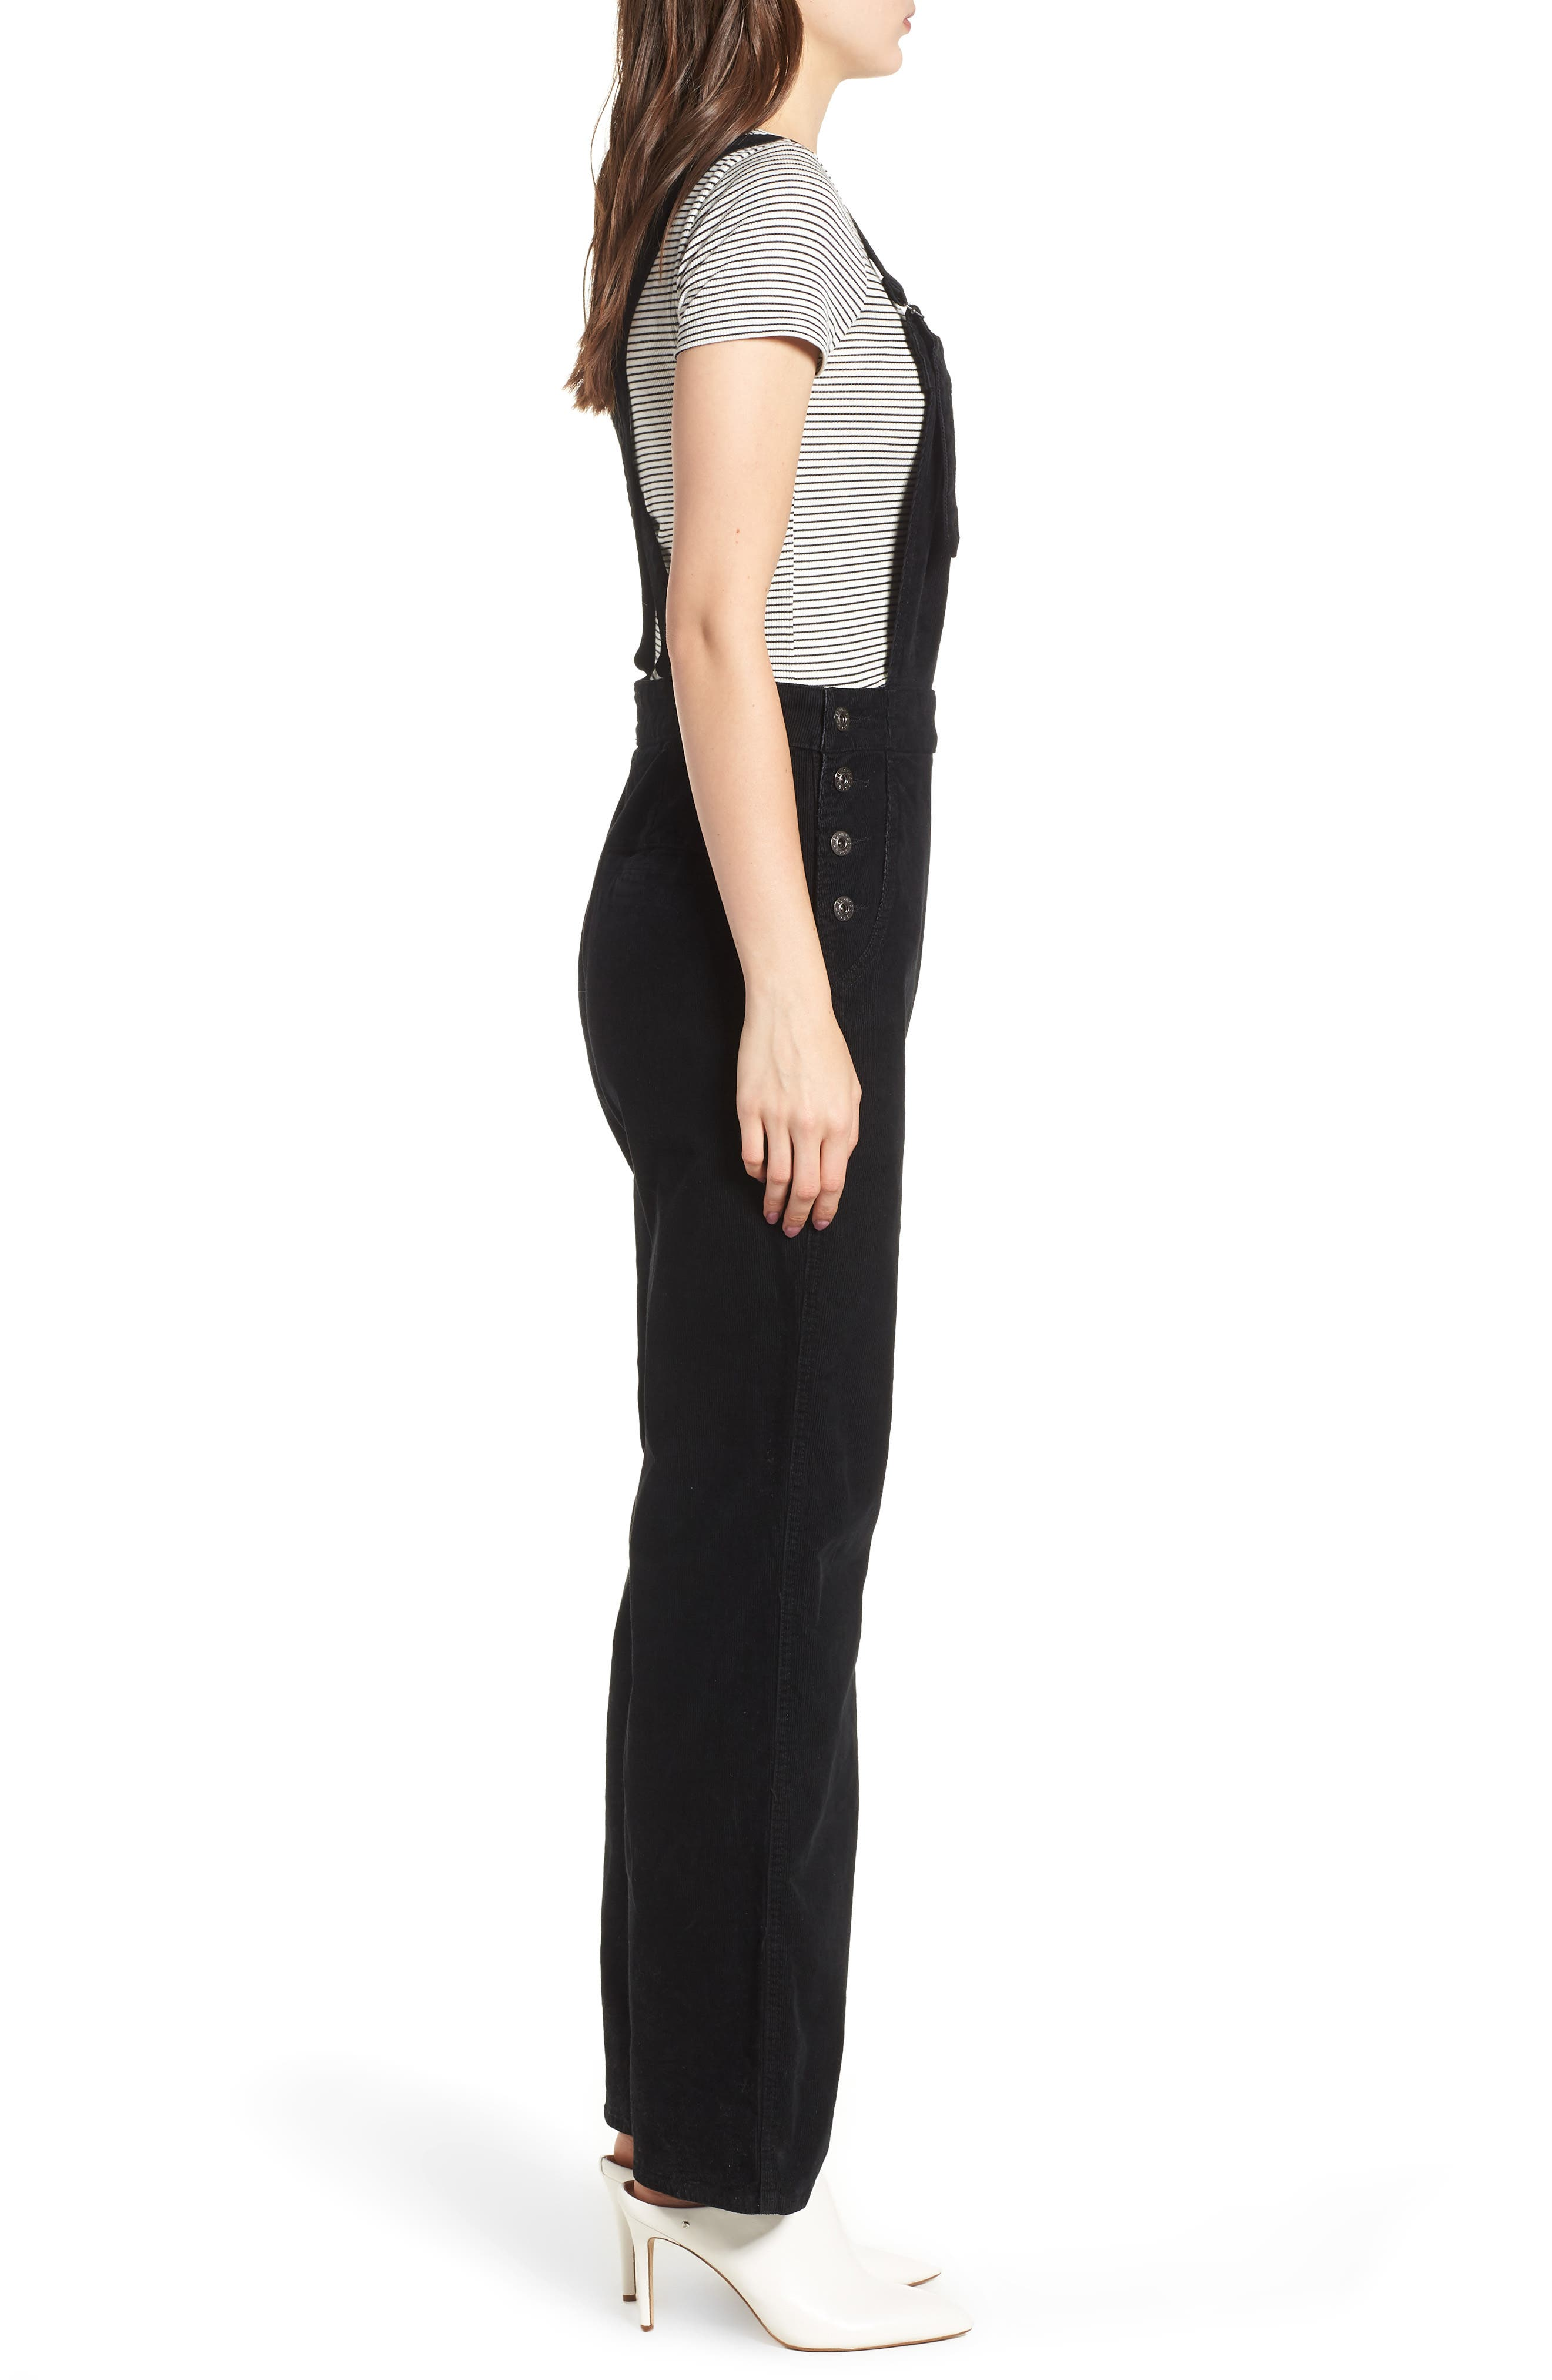 Gwendolyn Corduroy Overalls,                             Alternate thumbnail 3, color,                             018